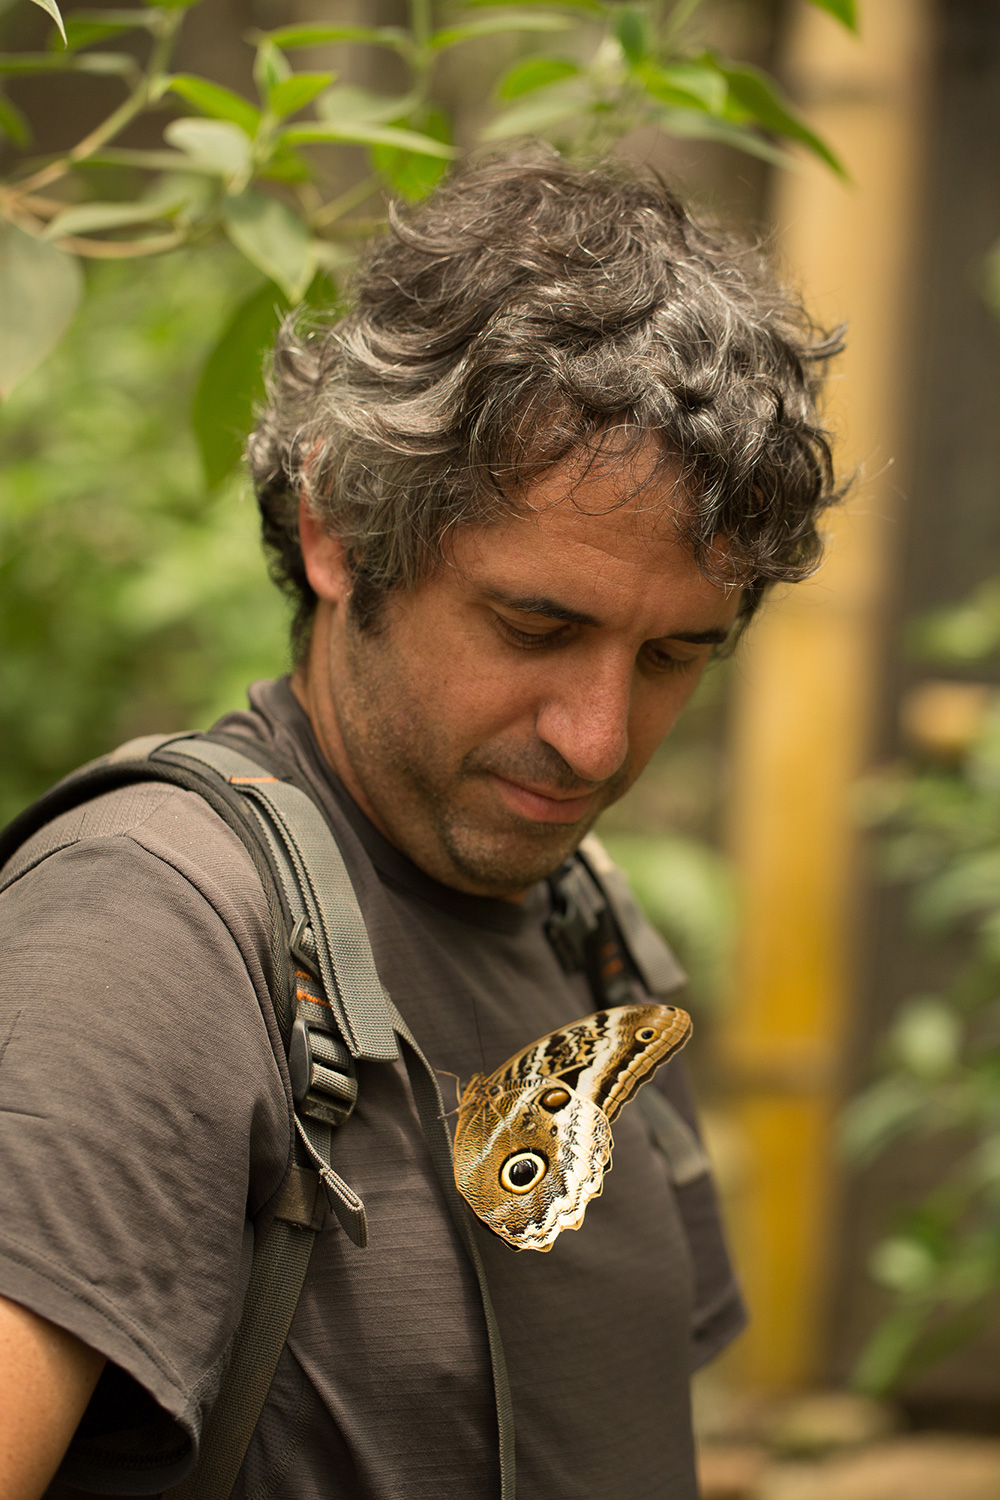 A team member looks at a butterfly that has perched on his chest